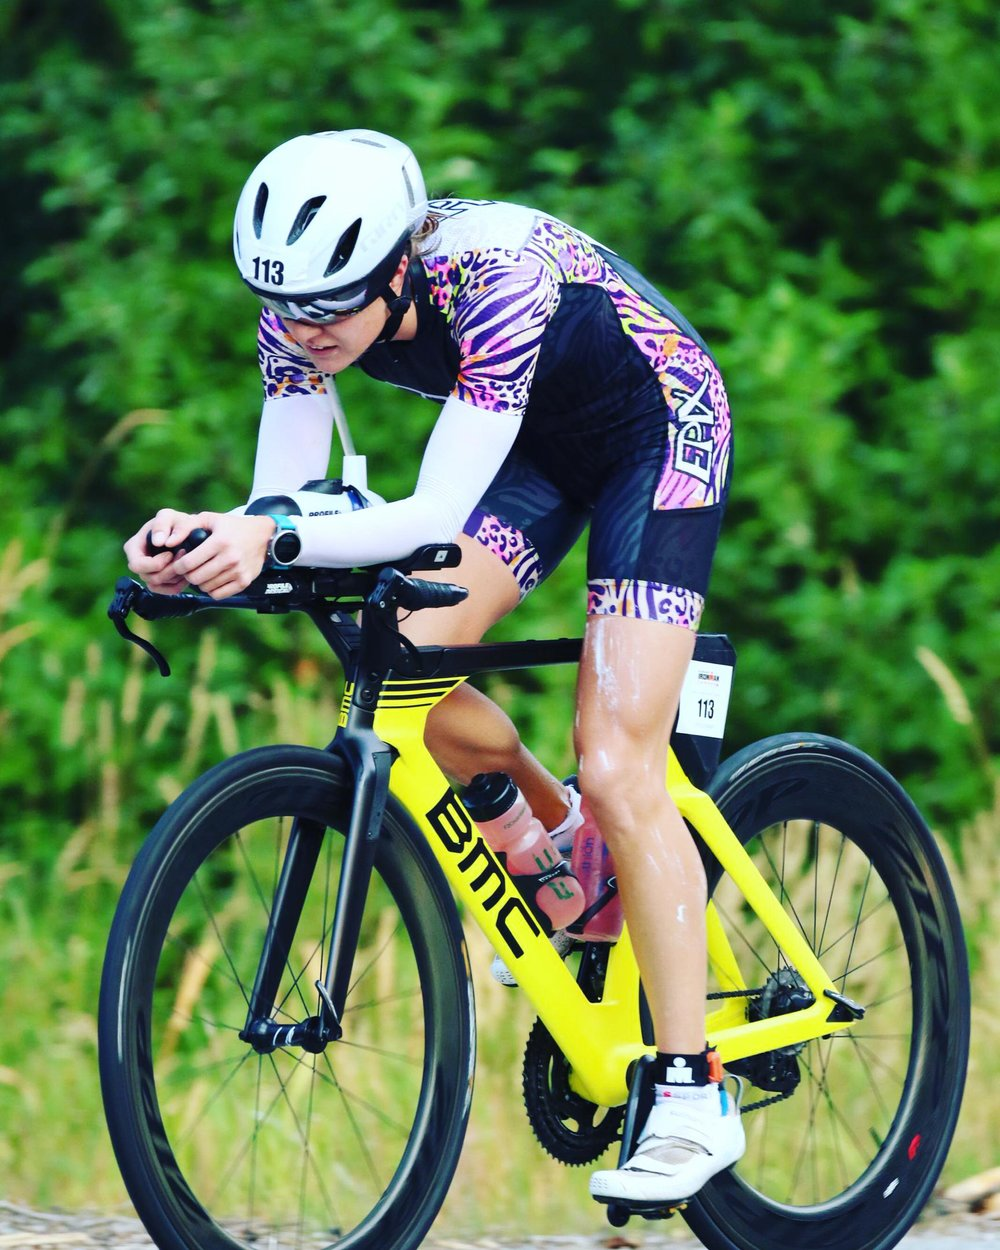 Coach_Terry_Wilson_Pursuit_of_The_Perfect_Race_IRONMAN_Canada_Meghan_Faulkenberry_Triathlon_Racing_Mike_Riley_bike.jpg